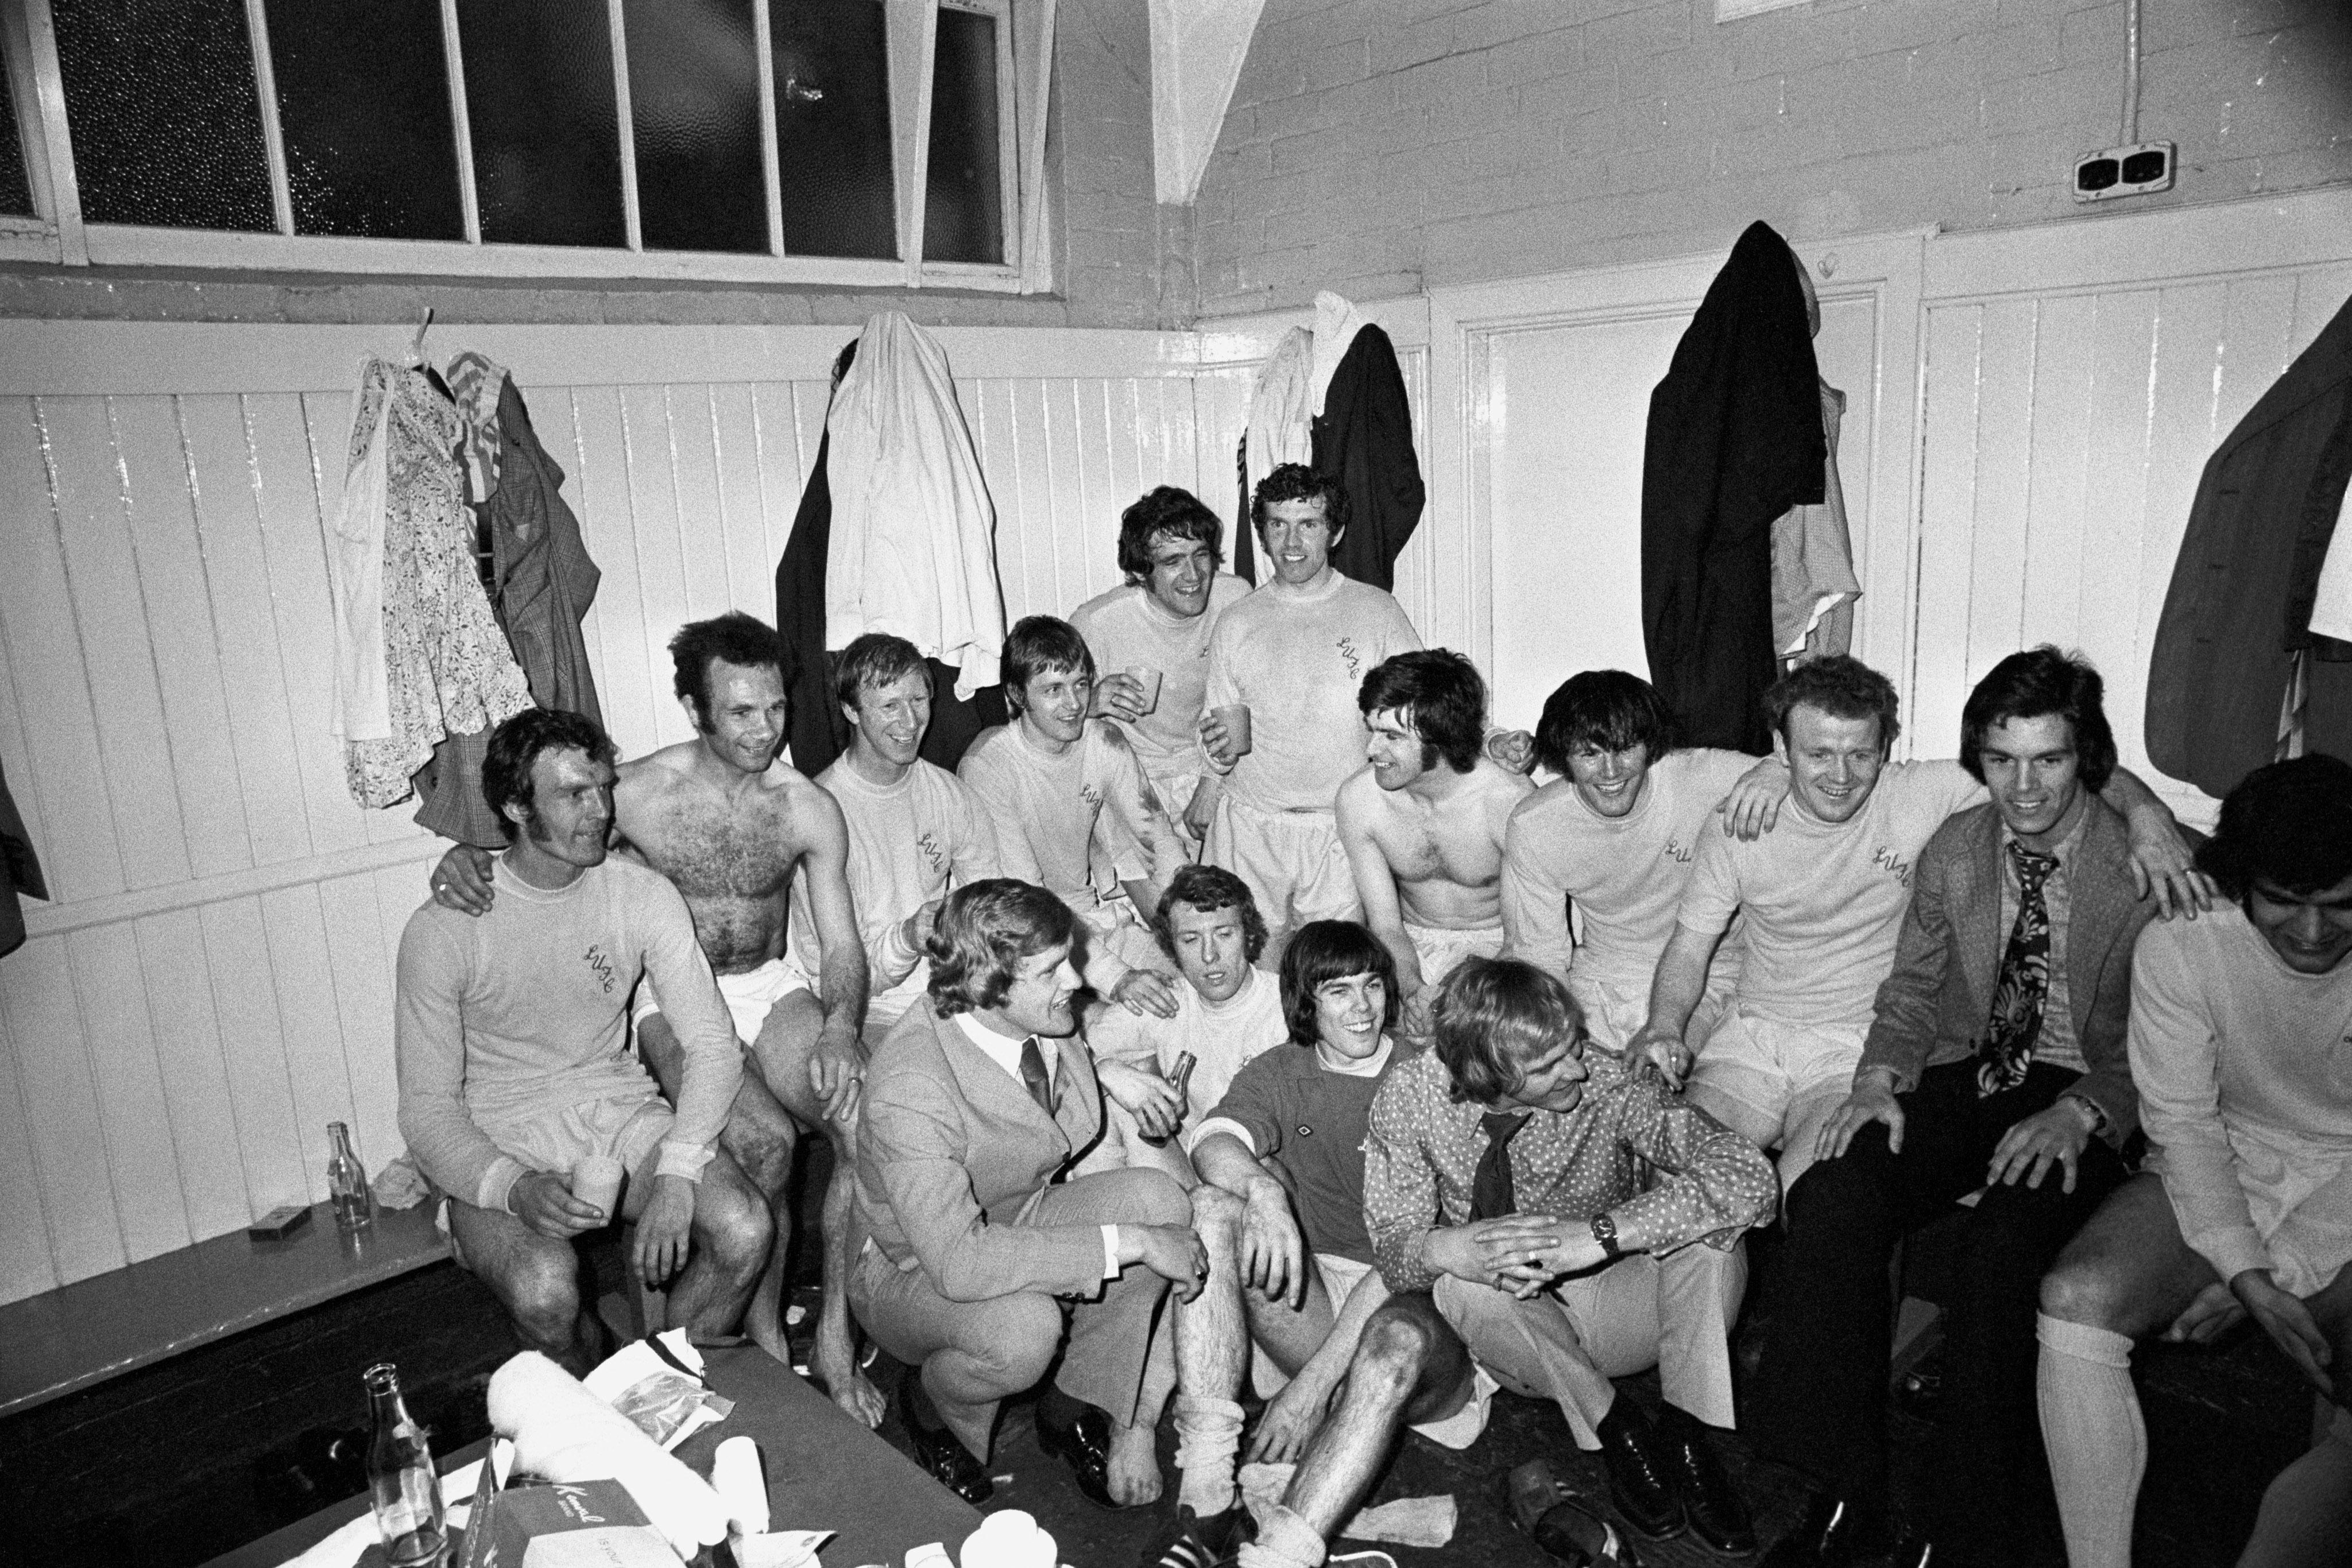 Inside Soccer Changing Rooms Of The 1970s: Bathtime With The ...